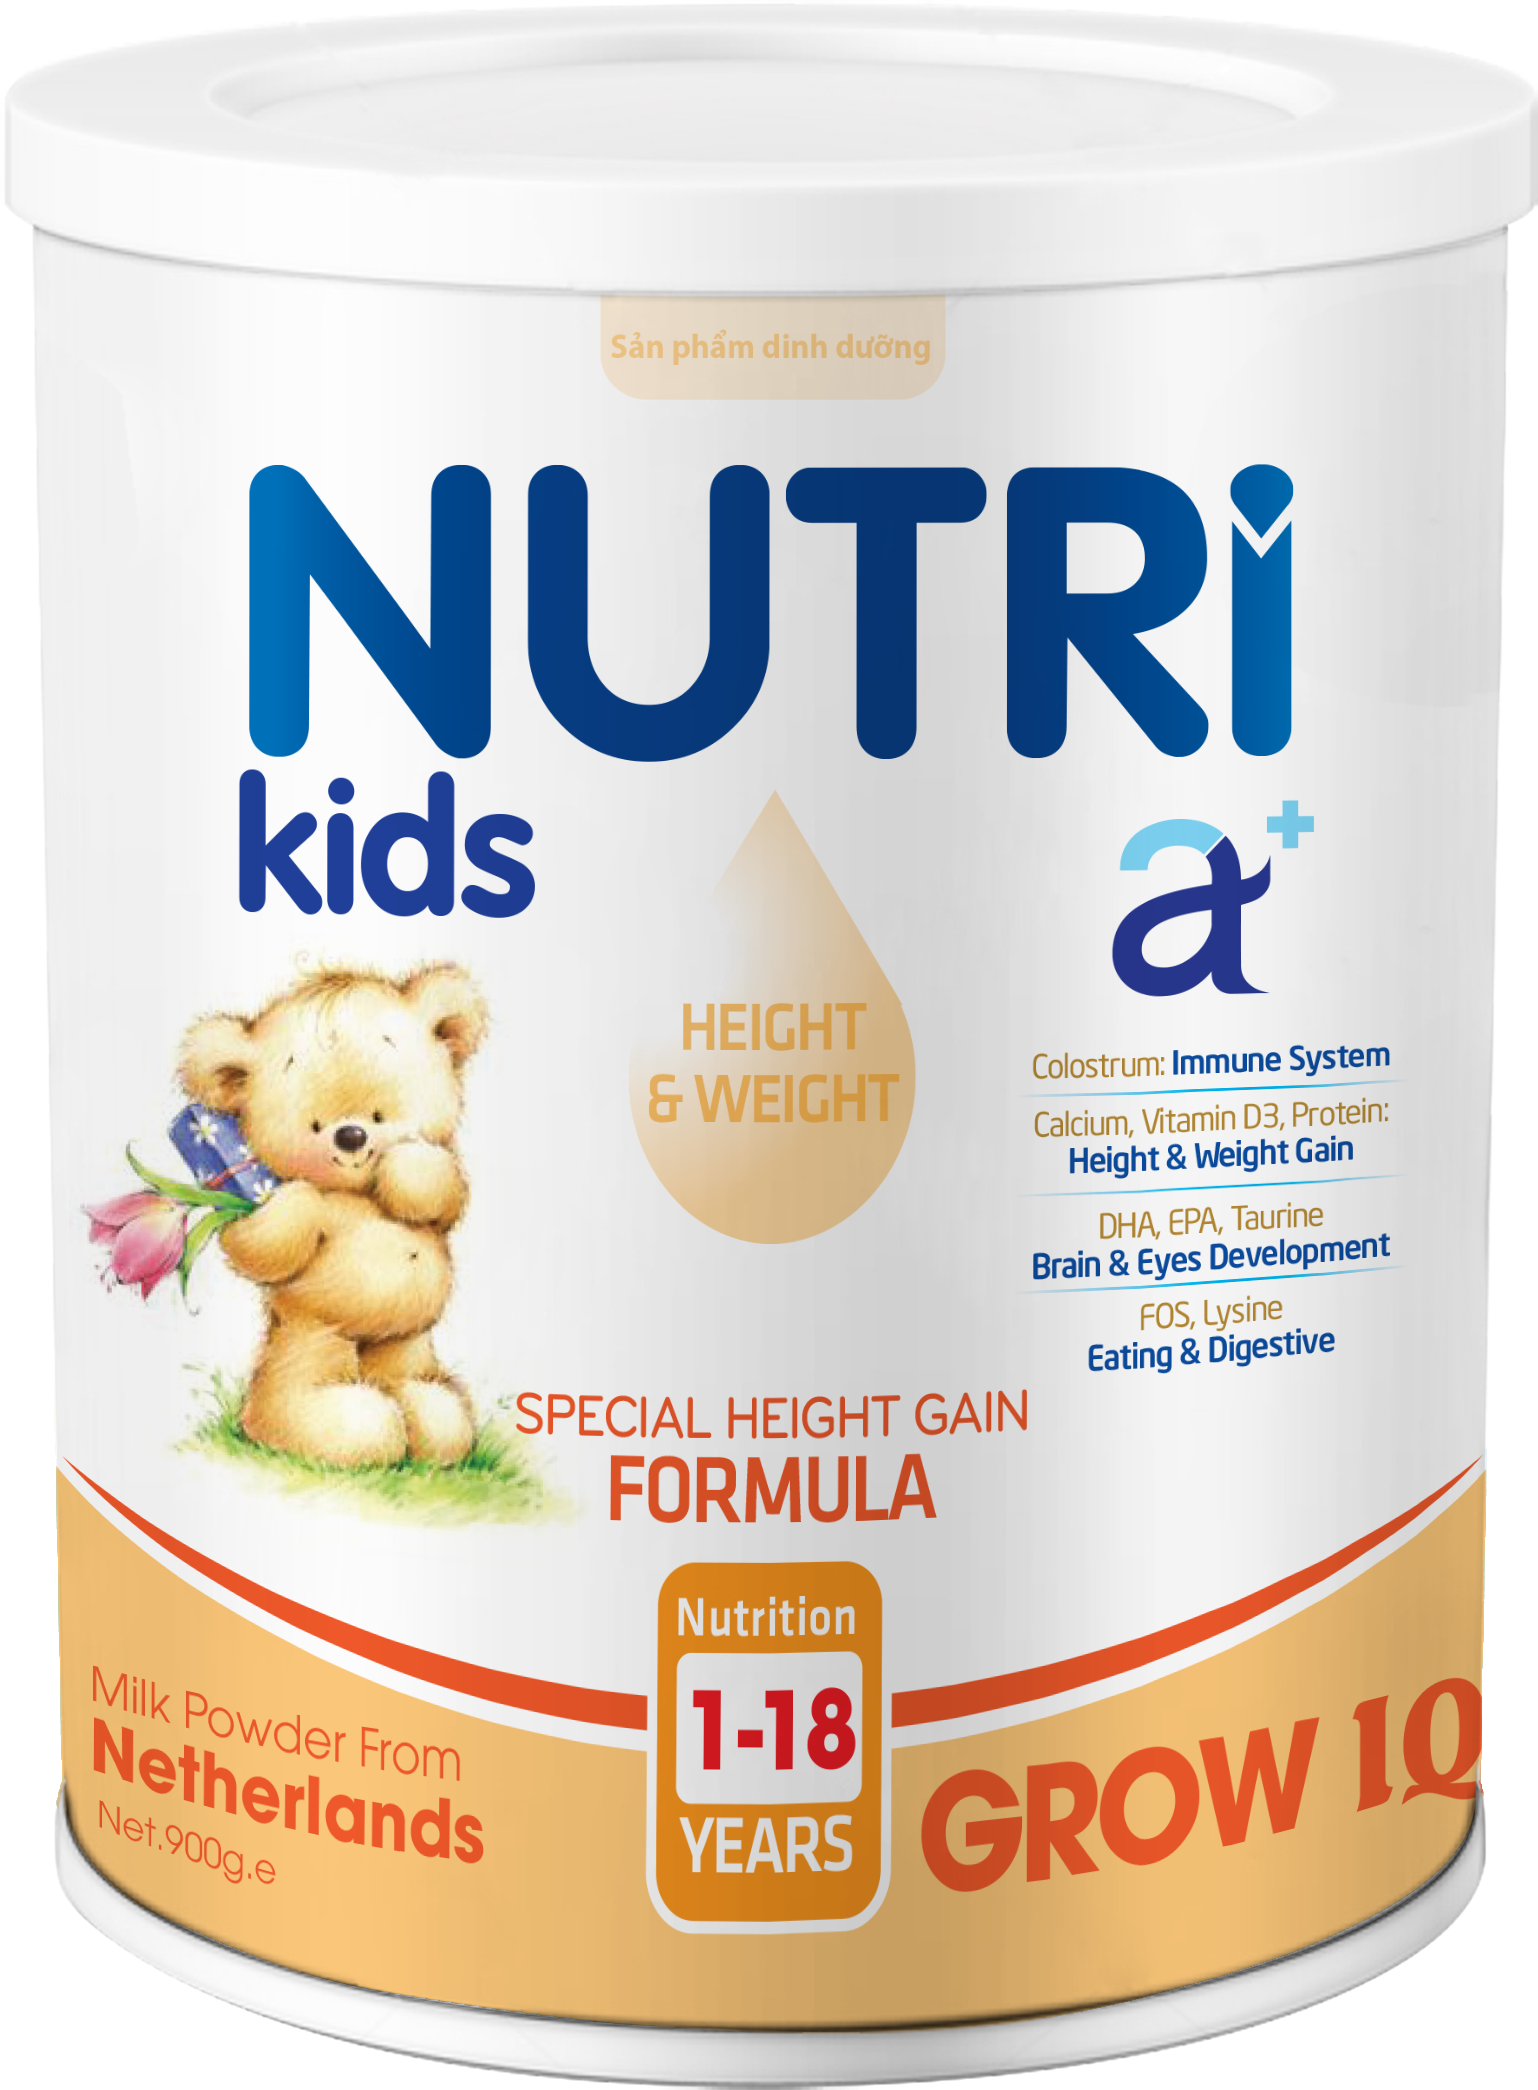 NUTRI KIDS A+ GROW IQ 900g